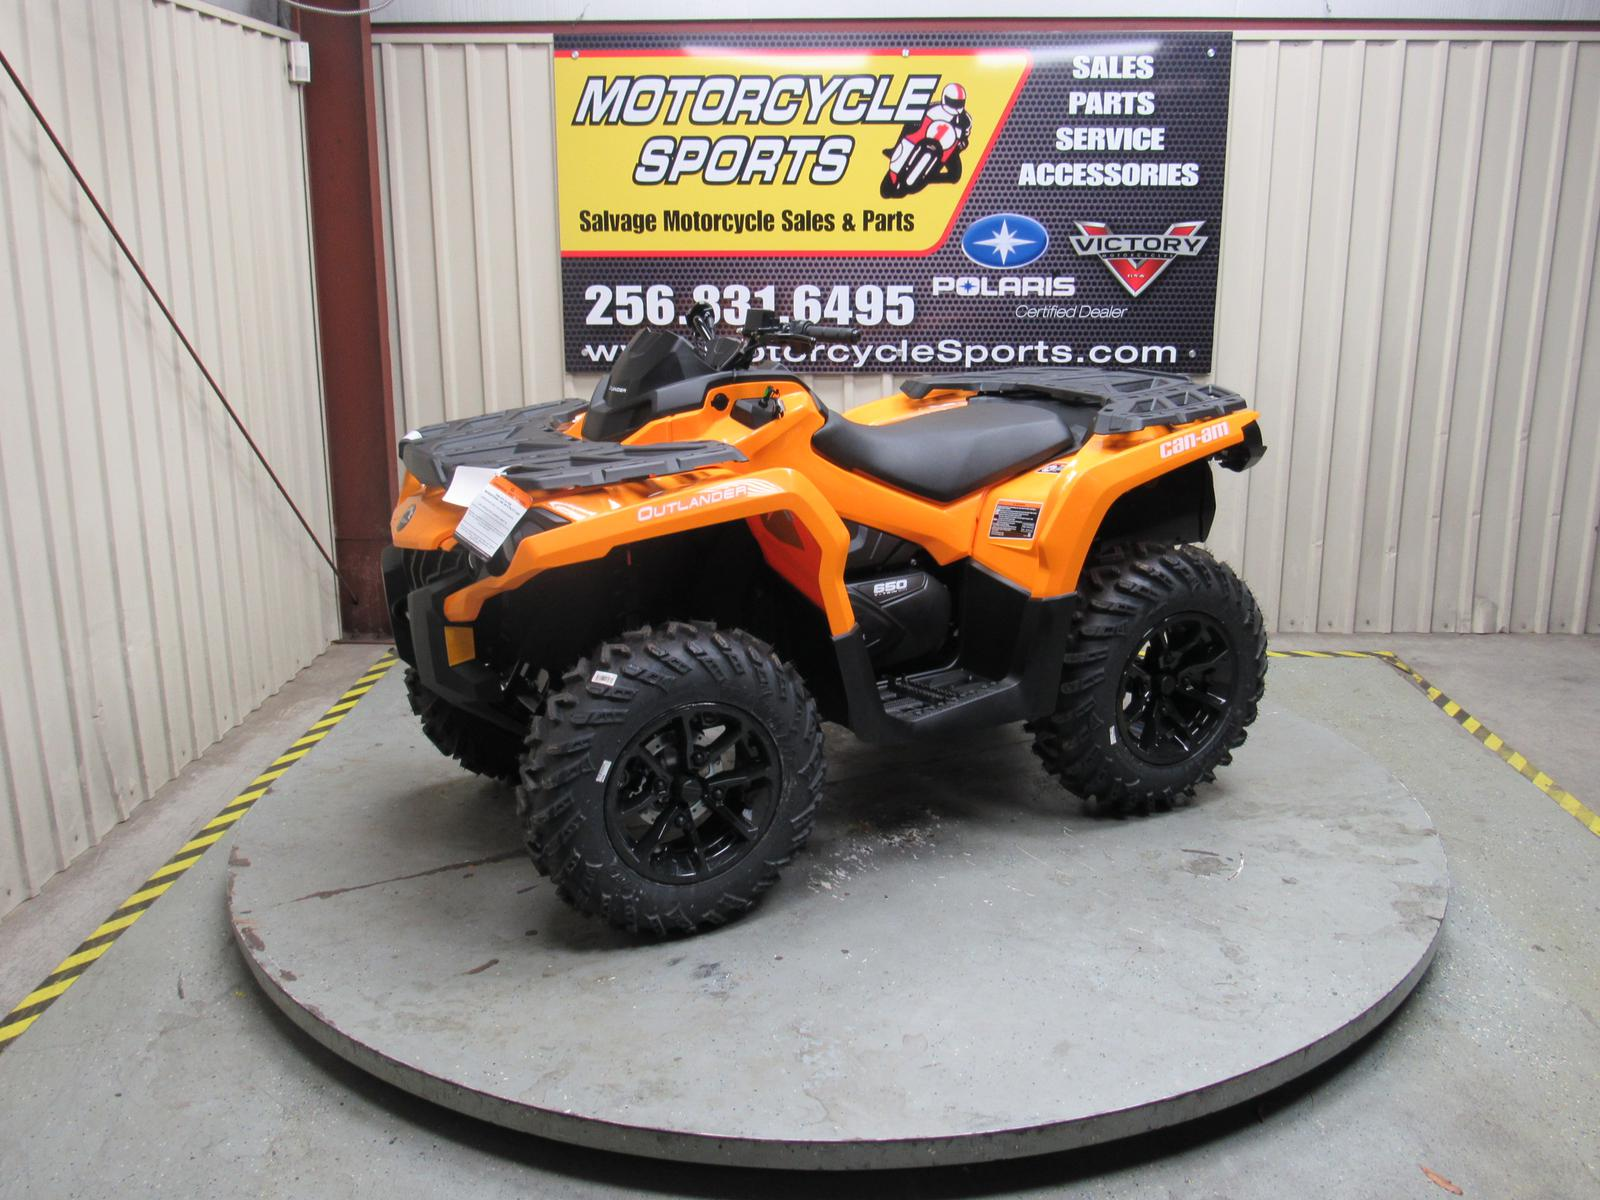 New Inventory Motorcycle Sports, Inc  Munford, AL (256) 831-6495